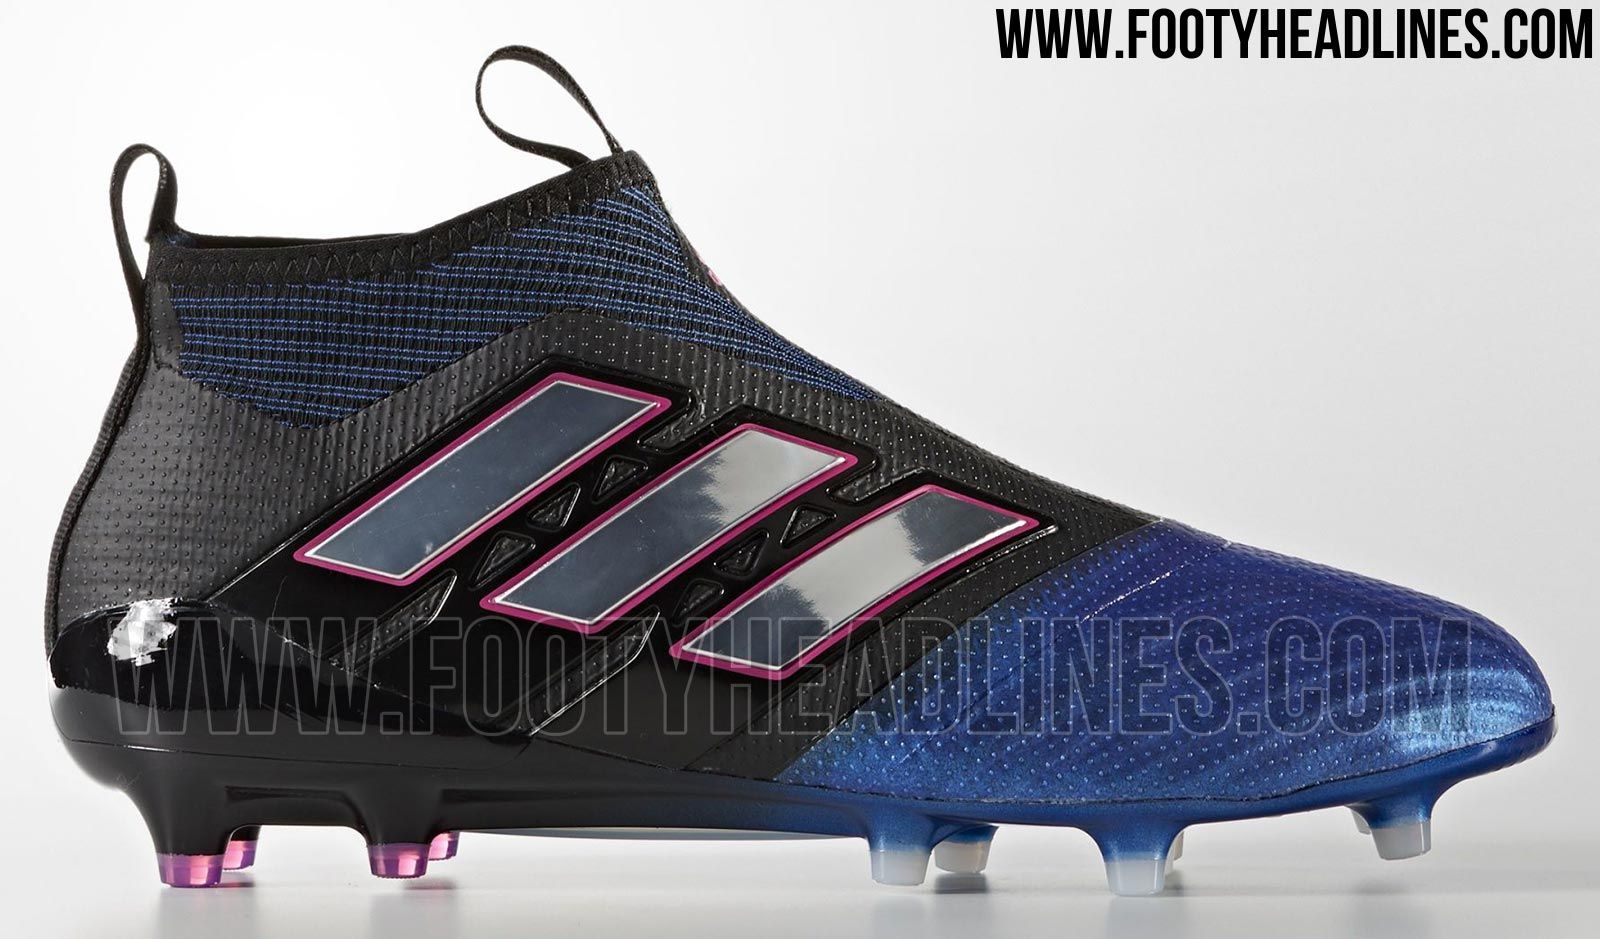 Check Out All Football Boots Included In The New Adidas Blue Blast Collection Blue Adidas Adidas Soccer Shoes Adidas